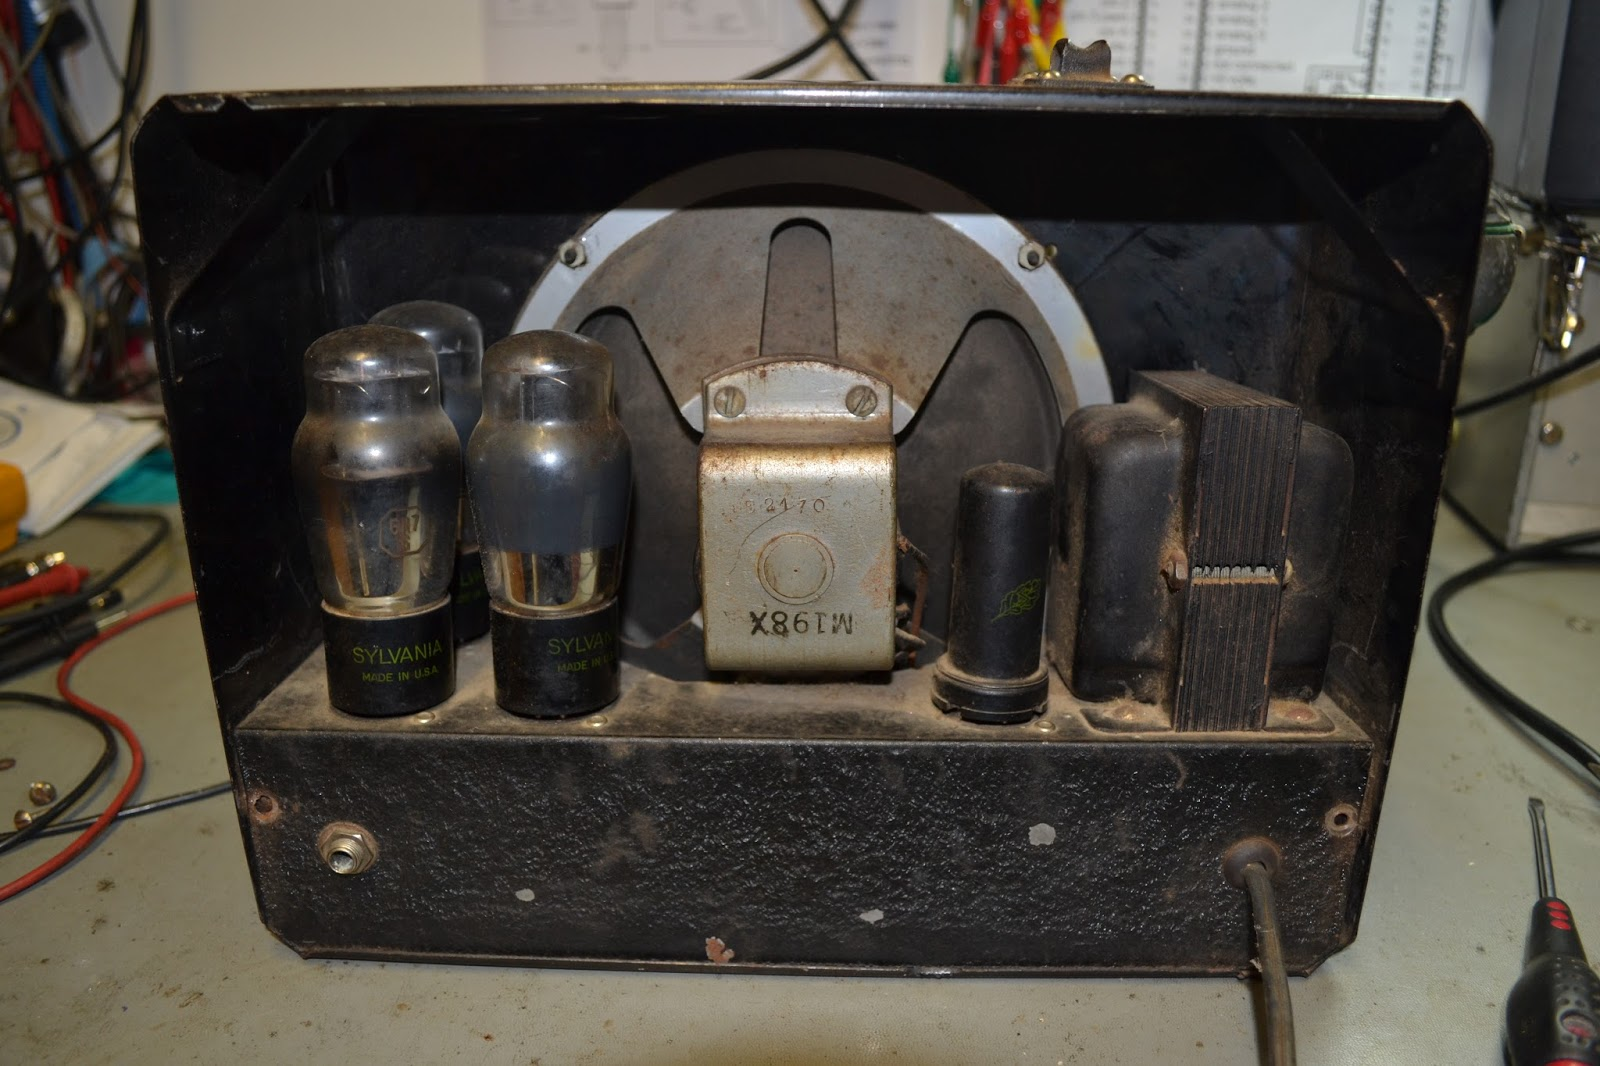 Doz Blog Rickenbacker Rickenbacher Model 59 Lap Steel Guitar Amp 5 Control Wiring Diagram Its A 1939 Note Pre War Spelling Here Although Theres No Markings On It Made In The Us And Designed For 110v 60hz Power